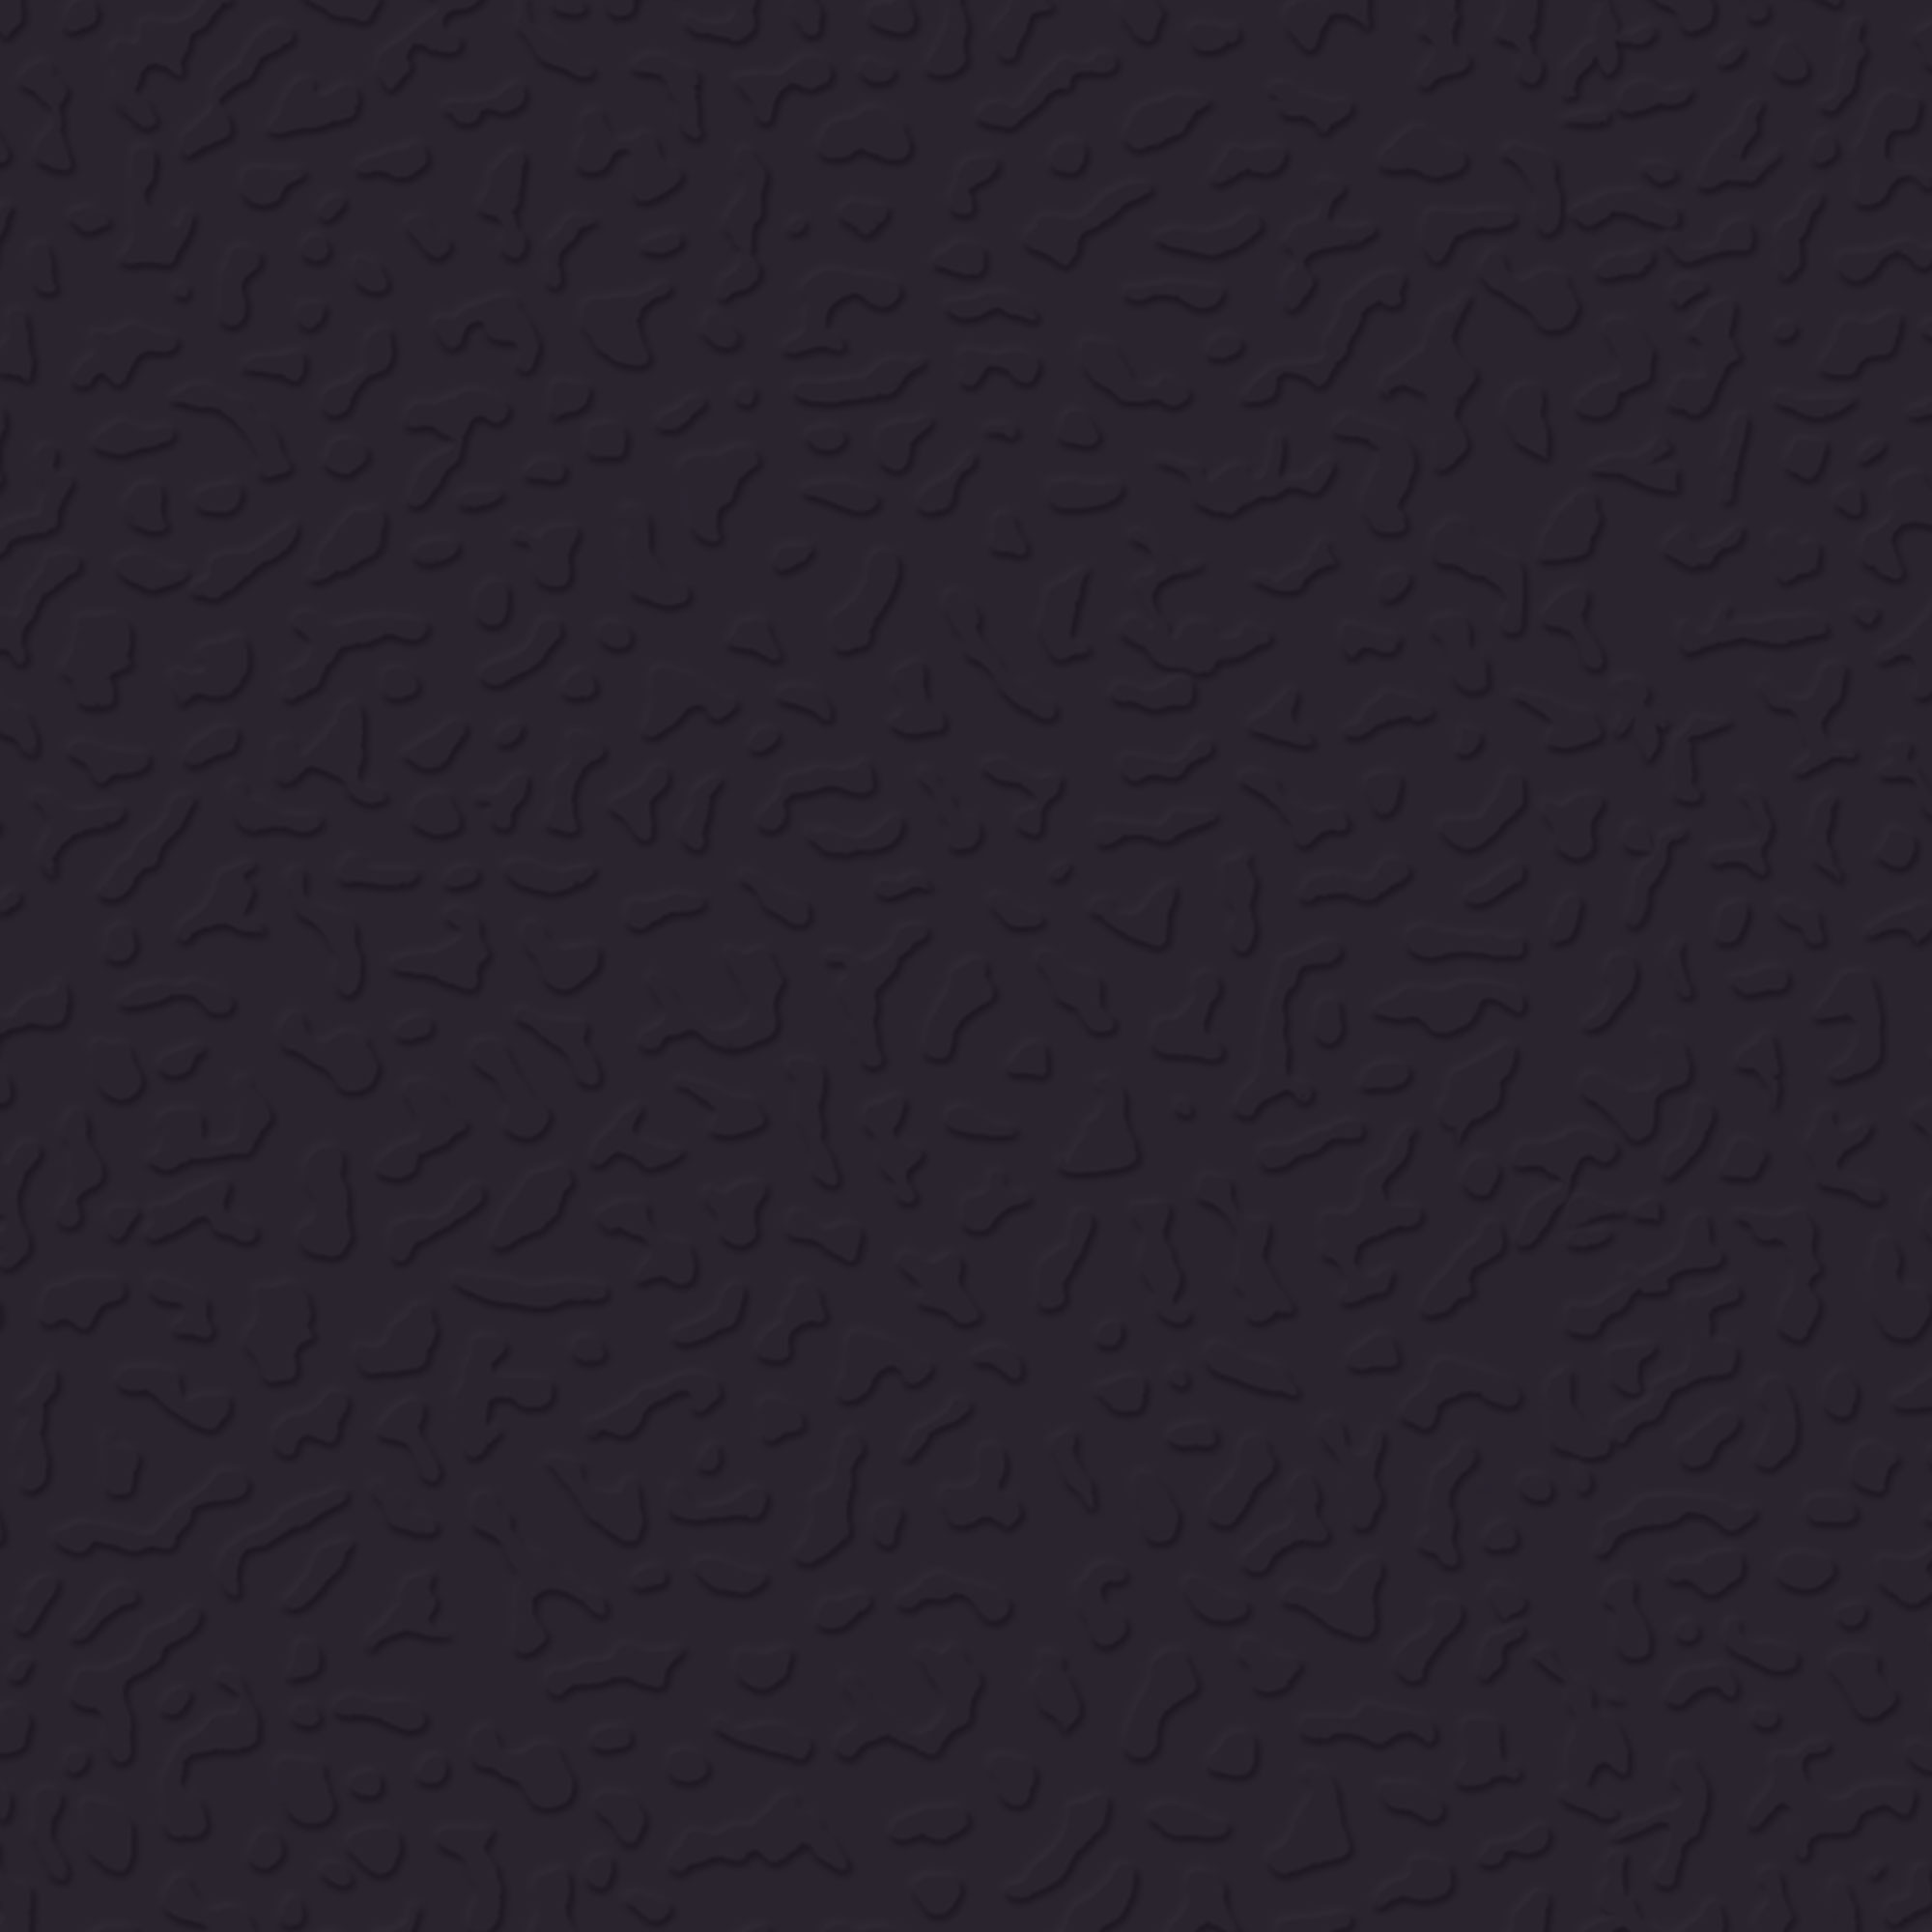 Roppe Rubber Tile 900 - Textured Design (993) Black LB996100